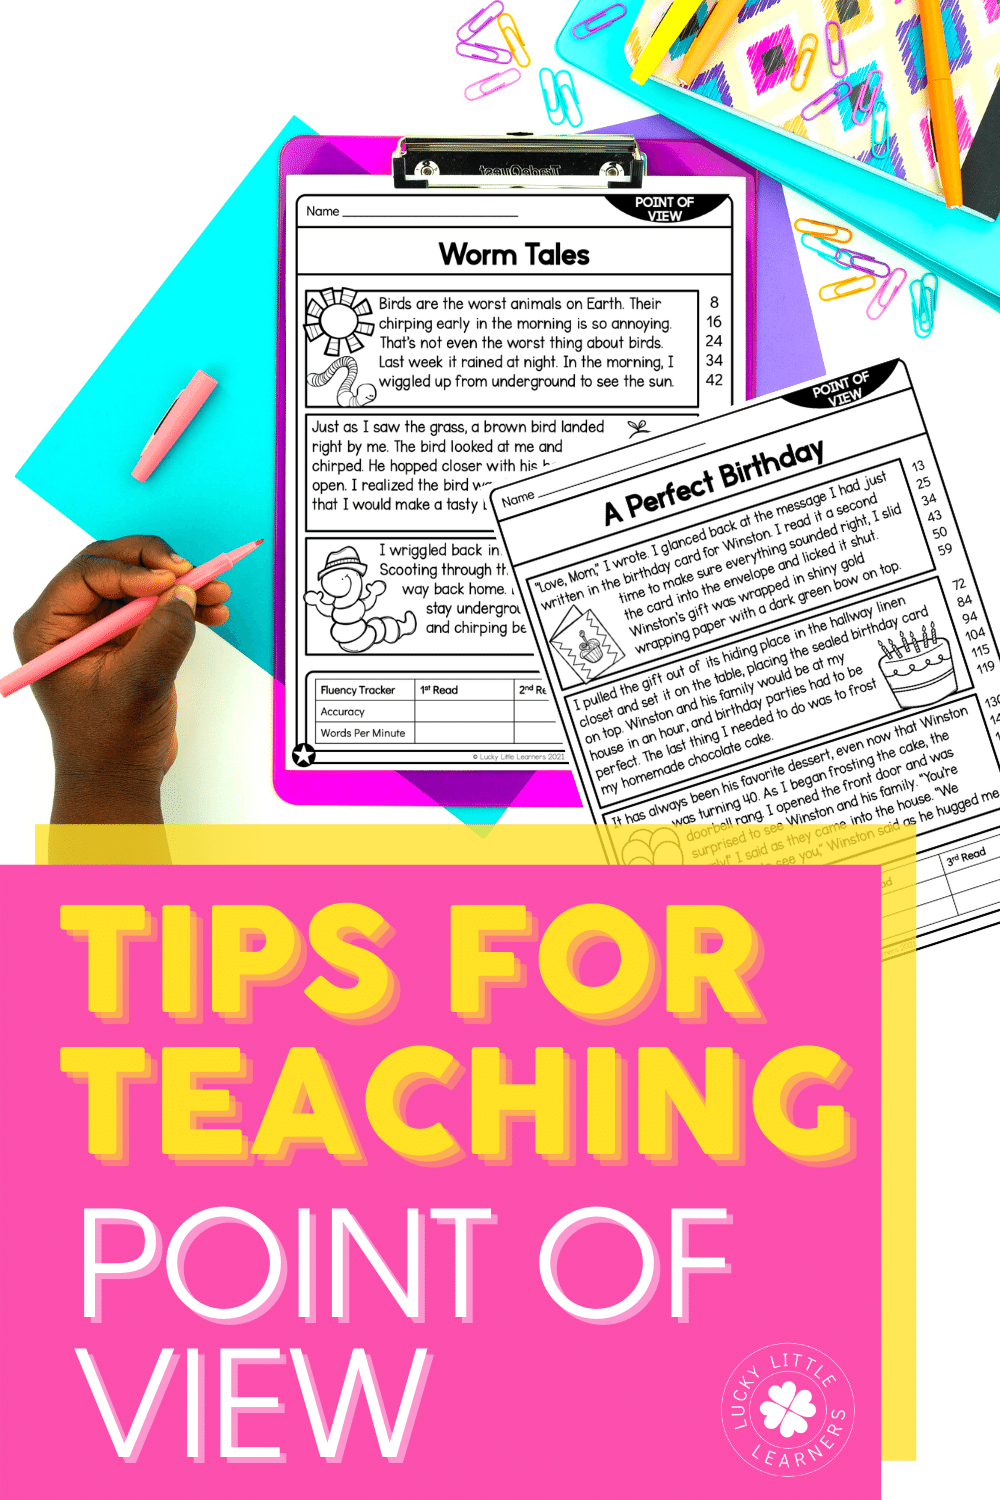 Point of view is a skill that can be viewed as overwhelming. How can you make sure your students retain the standard all while having fun? From introducing the skills, practicing, and then assessing we have you covered!